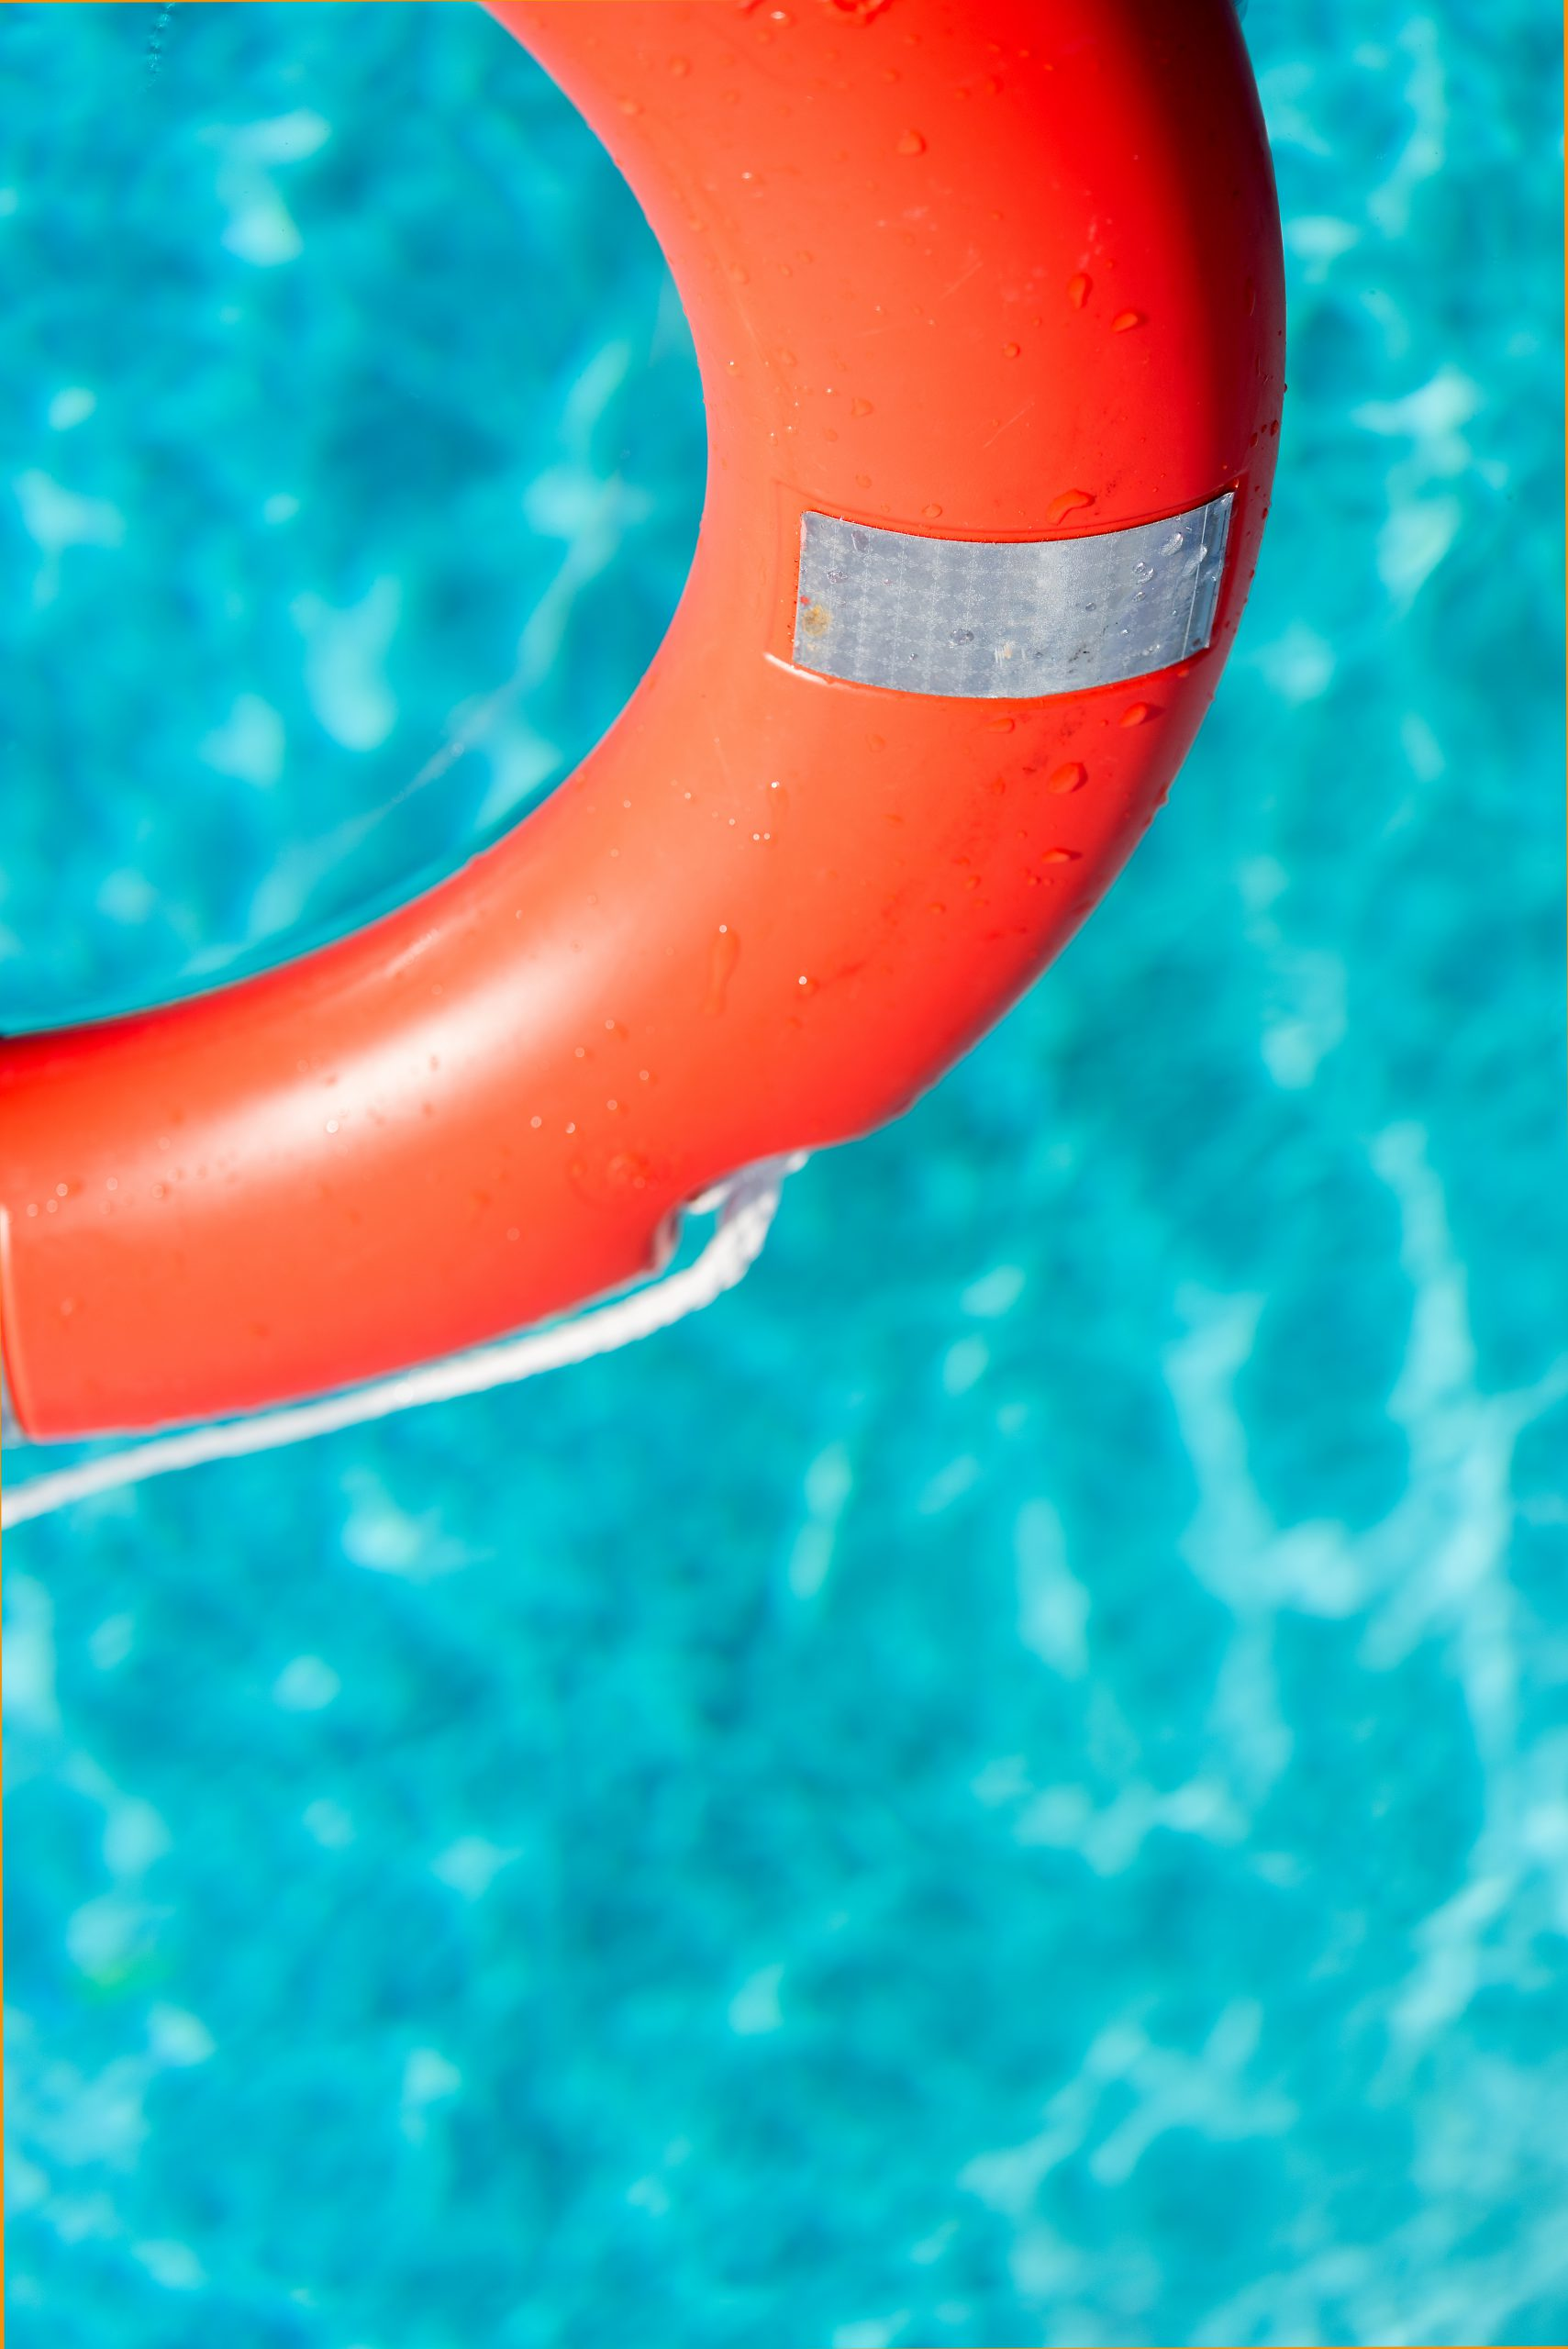 Child Safety Series-Drowning Prevention